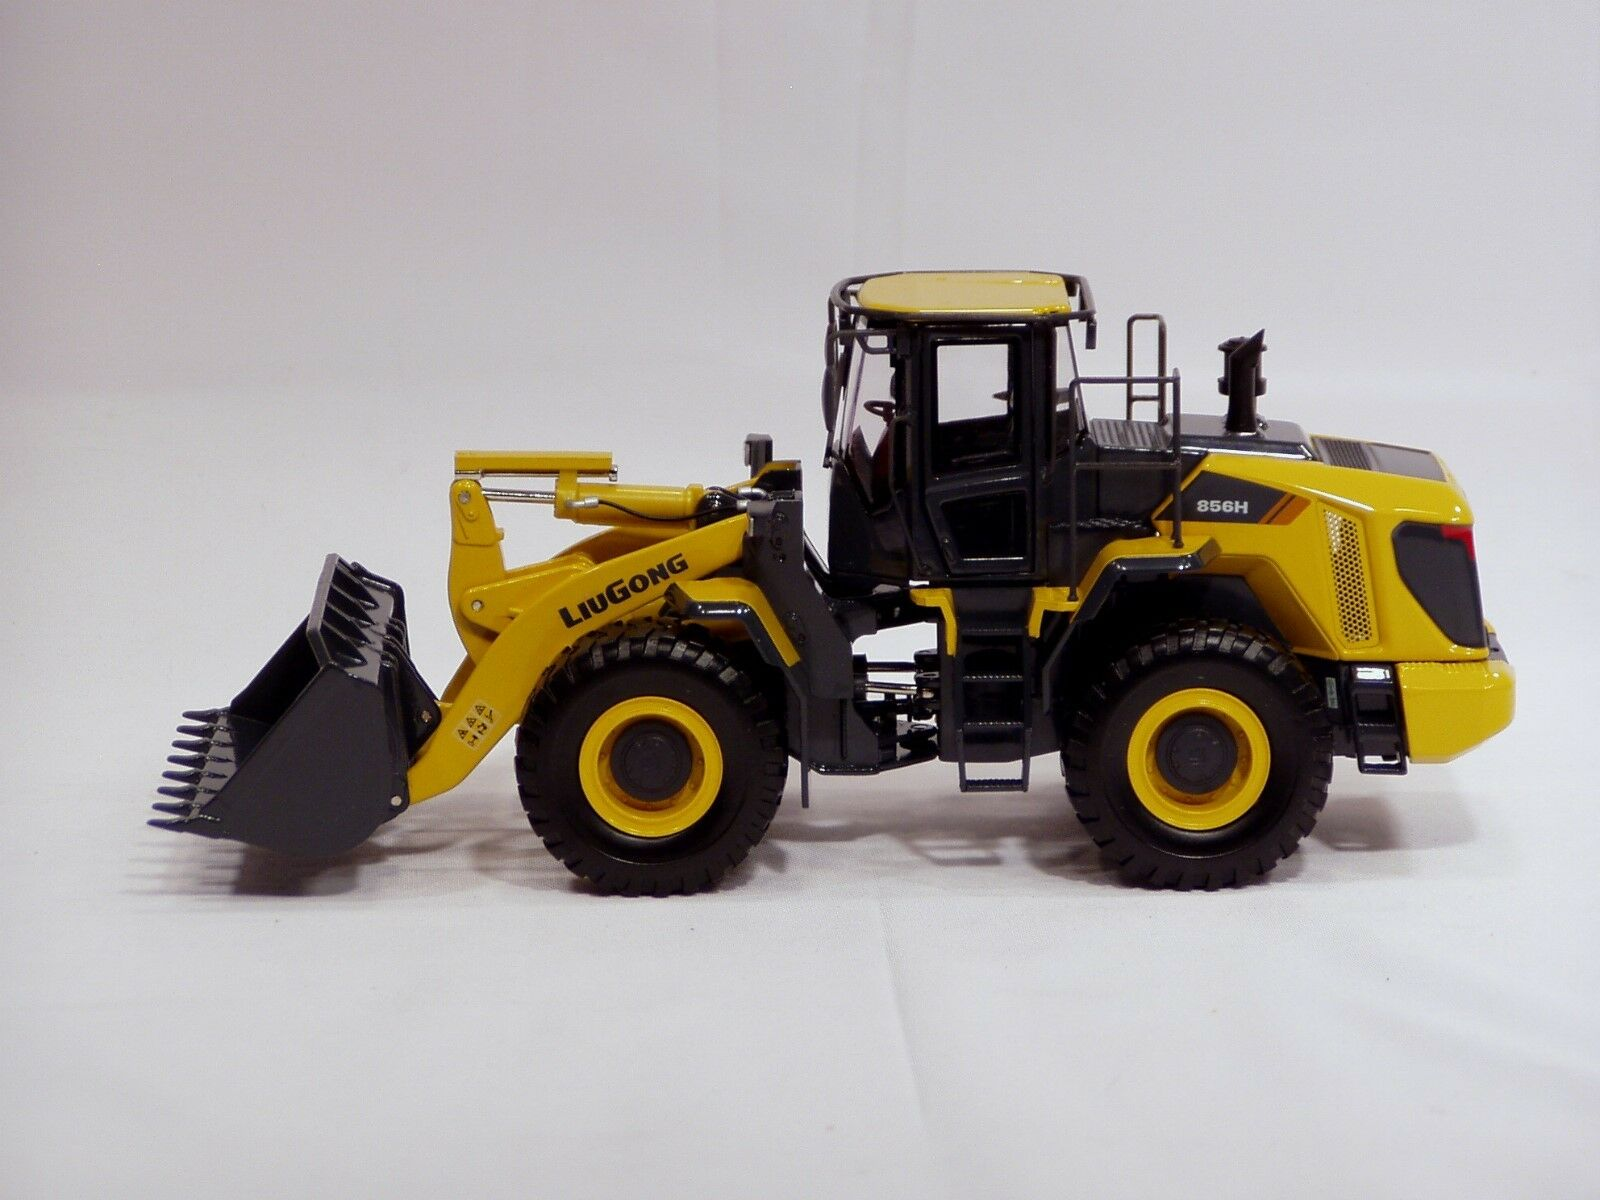 LiuGong 856H Wheel Loader - 1 35 - Brand New